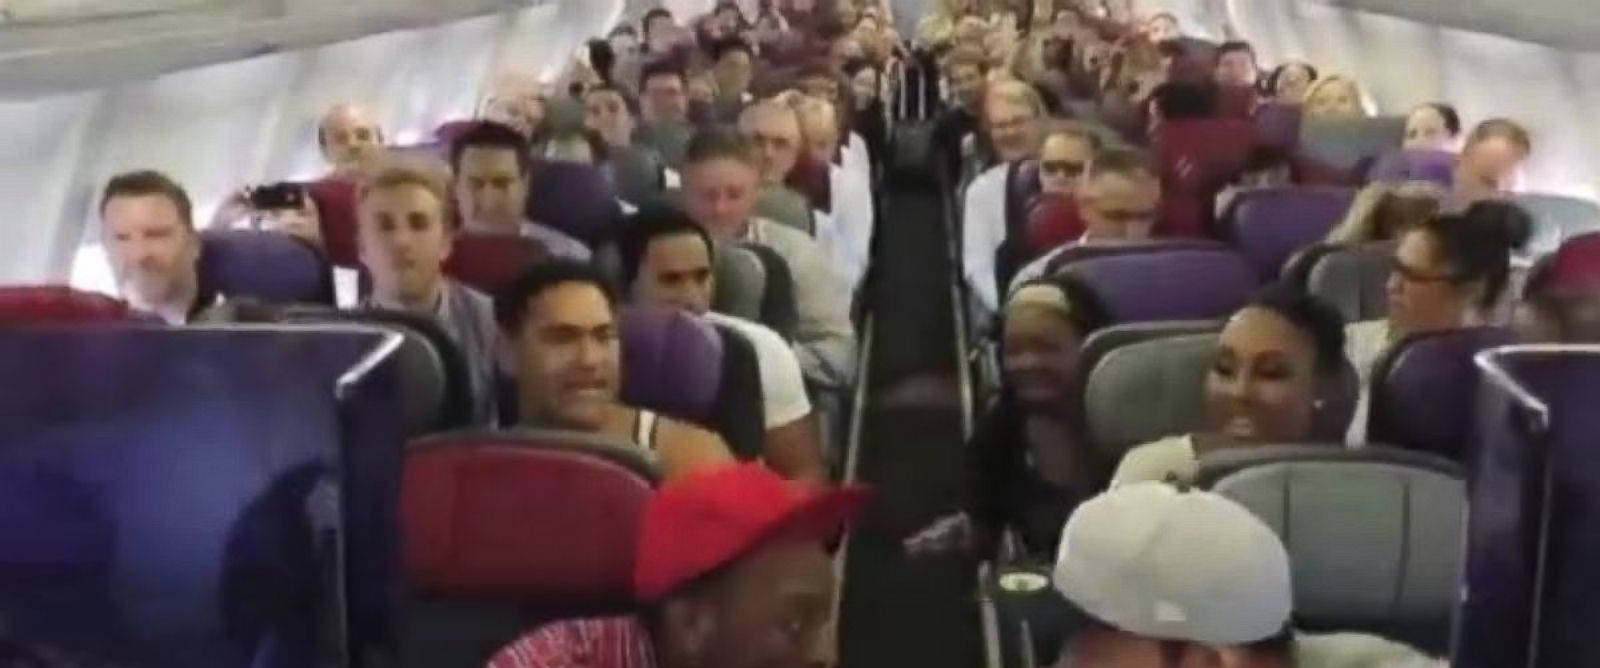 The Lion King Australia cast sings Circle of Life on a flight to Sydney from Brisbane.